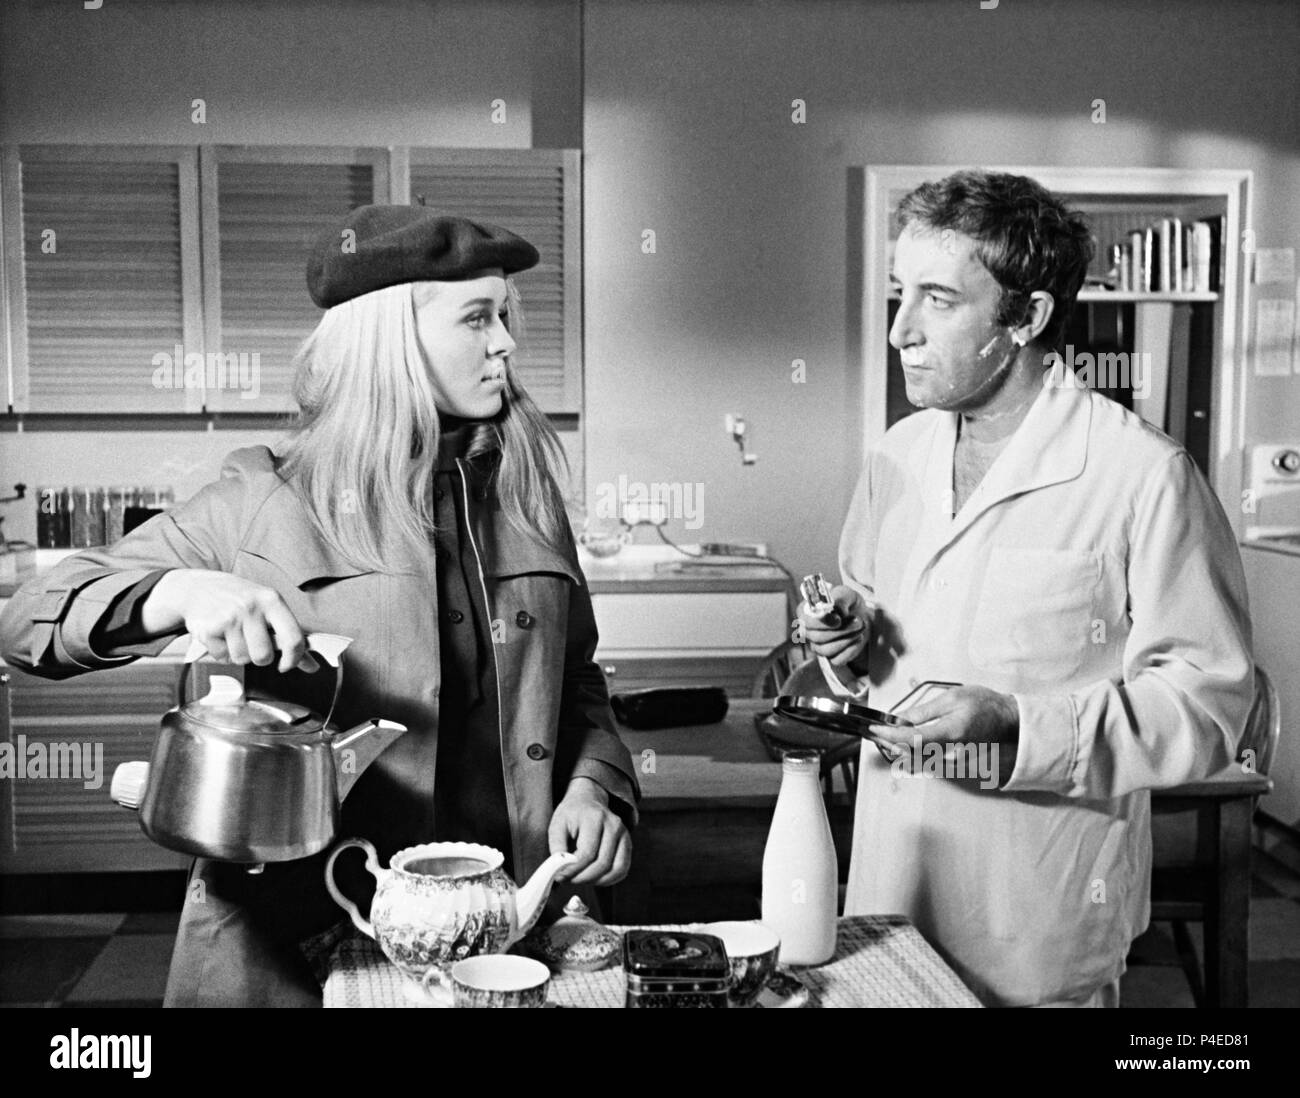 Original Film Title: HOFFMAN.  English Title: HOFFMAN.  Film Director: ALVIN RAKOFF.  Year: 1970.  Stars: SINEAD CUSACK; PETER SELLERS. Credit: ASSOCIATED BRITISH PICTURES / Album - Stock Image